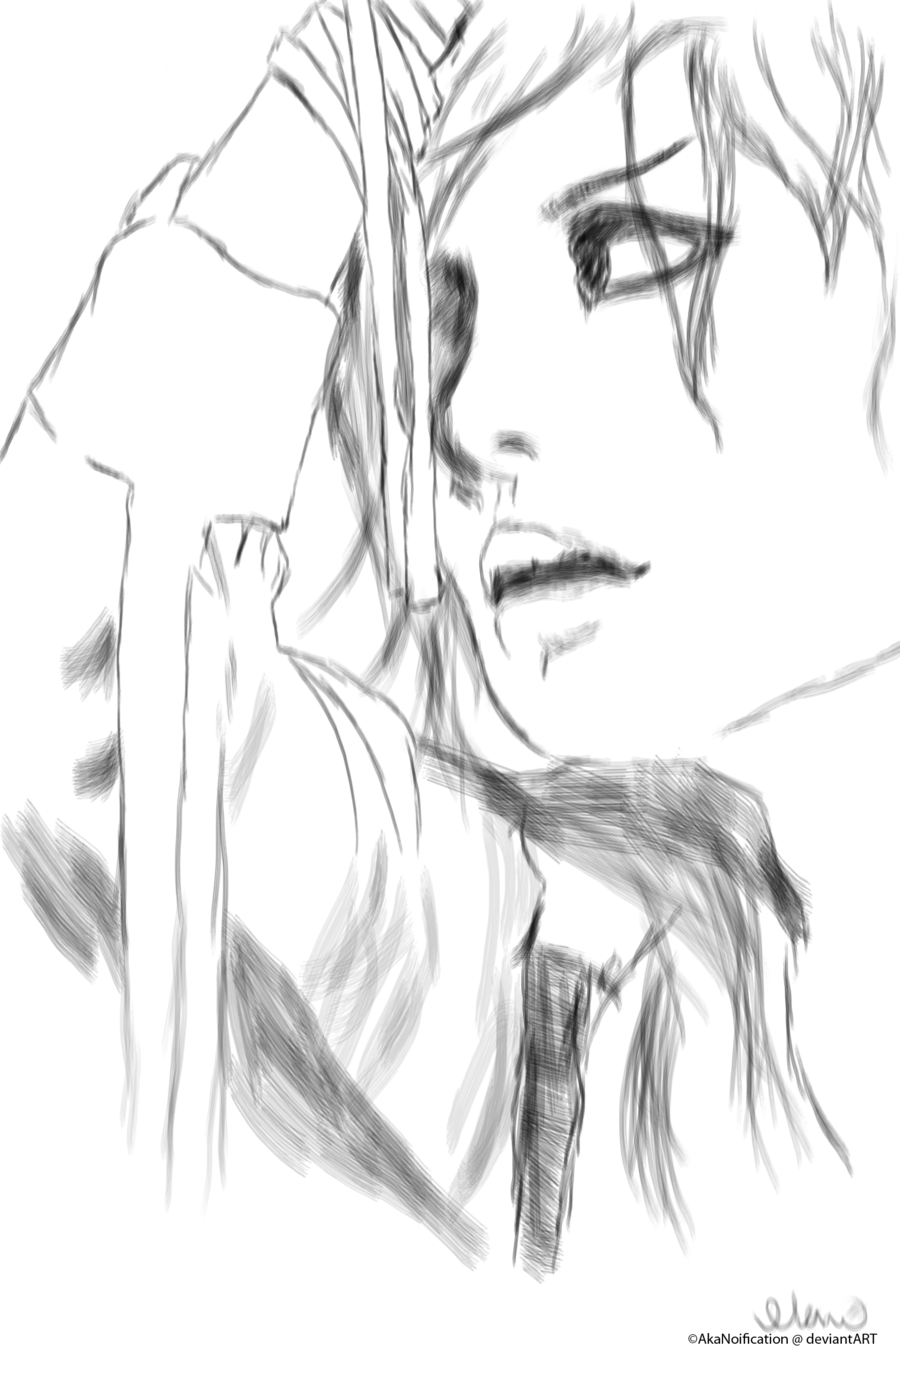 akanoification:  uruha sketch by ~AkaNoification